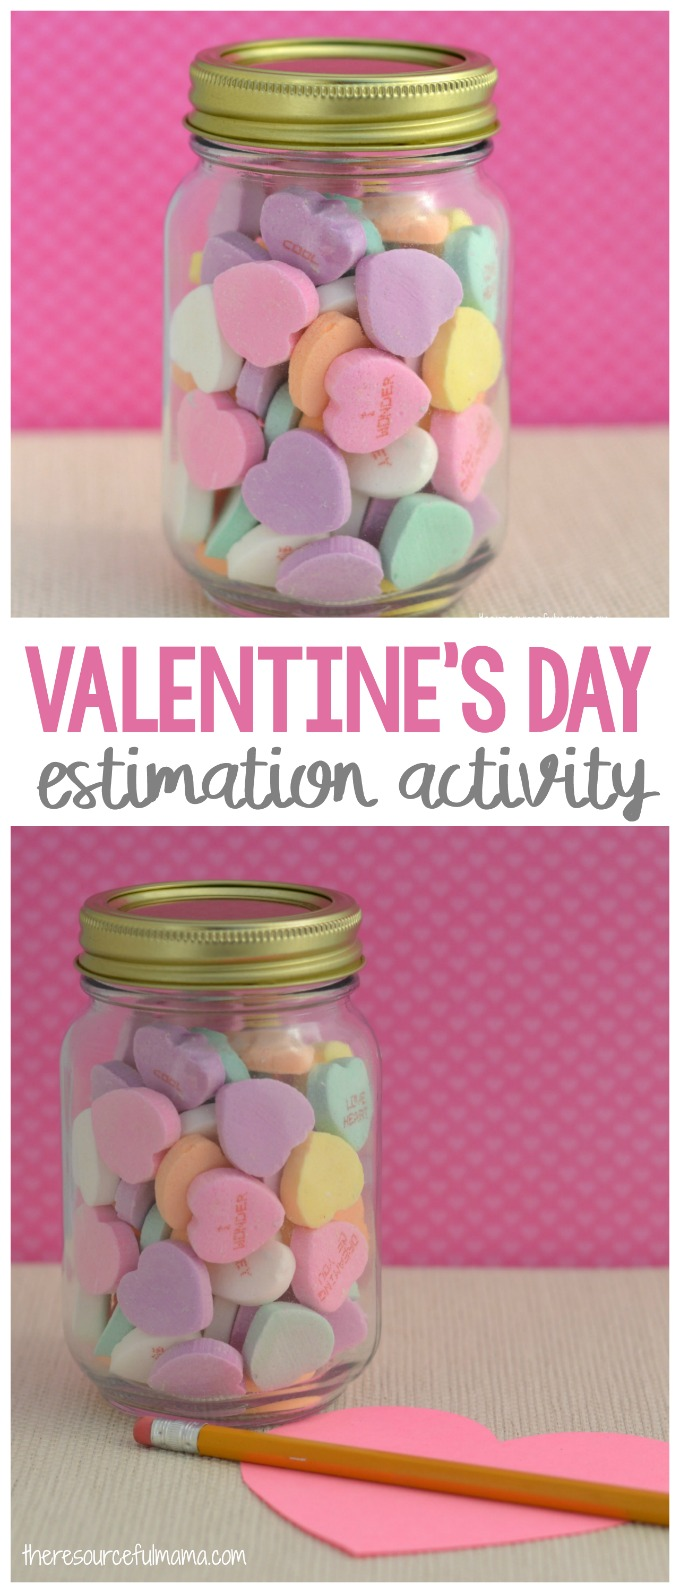 This Valentine's Day Estimation Activity is a simple, quick, and inexpensive game kids love playing at Valentine's Day parties.